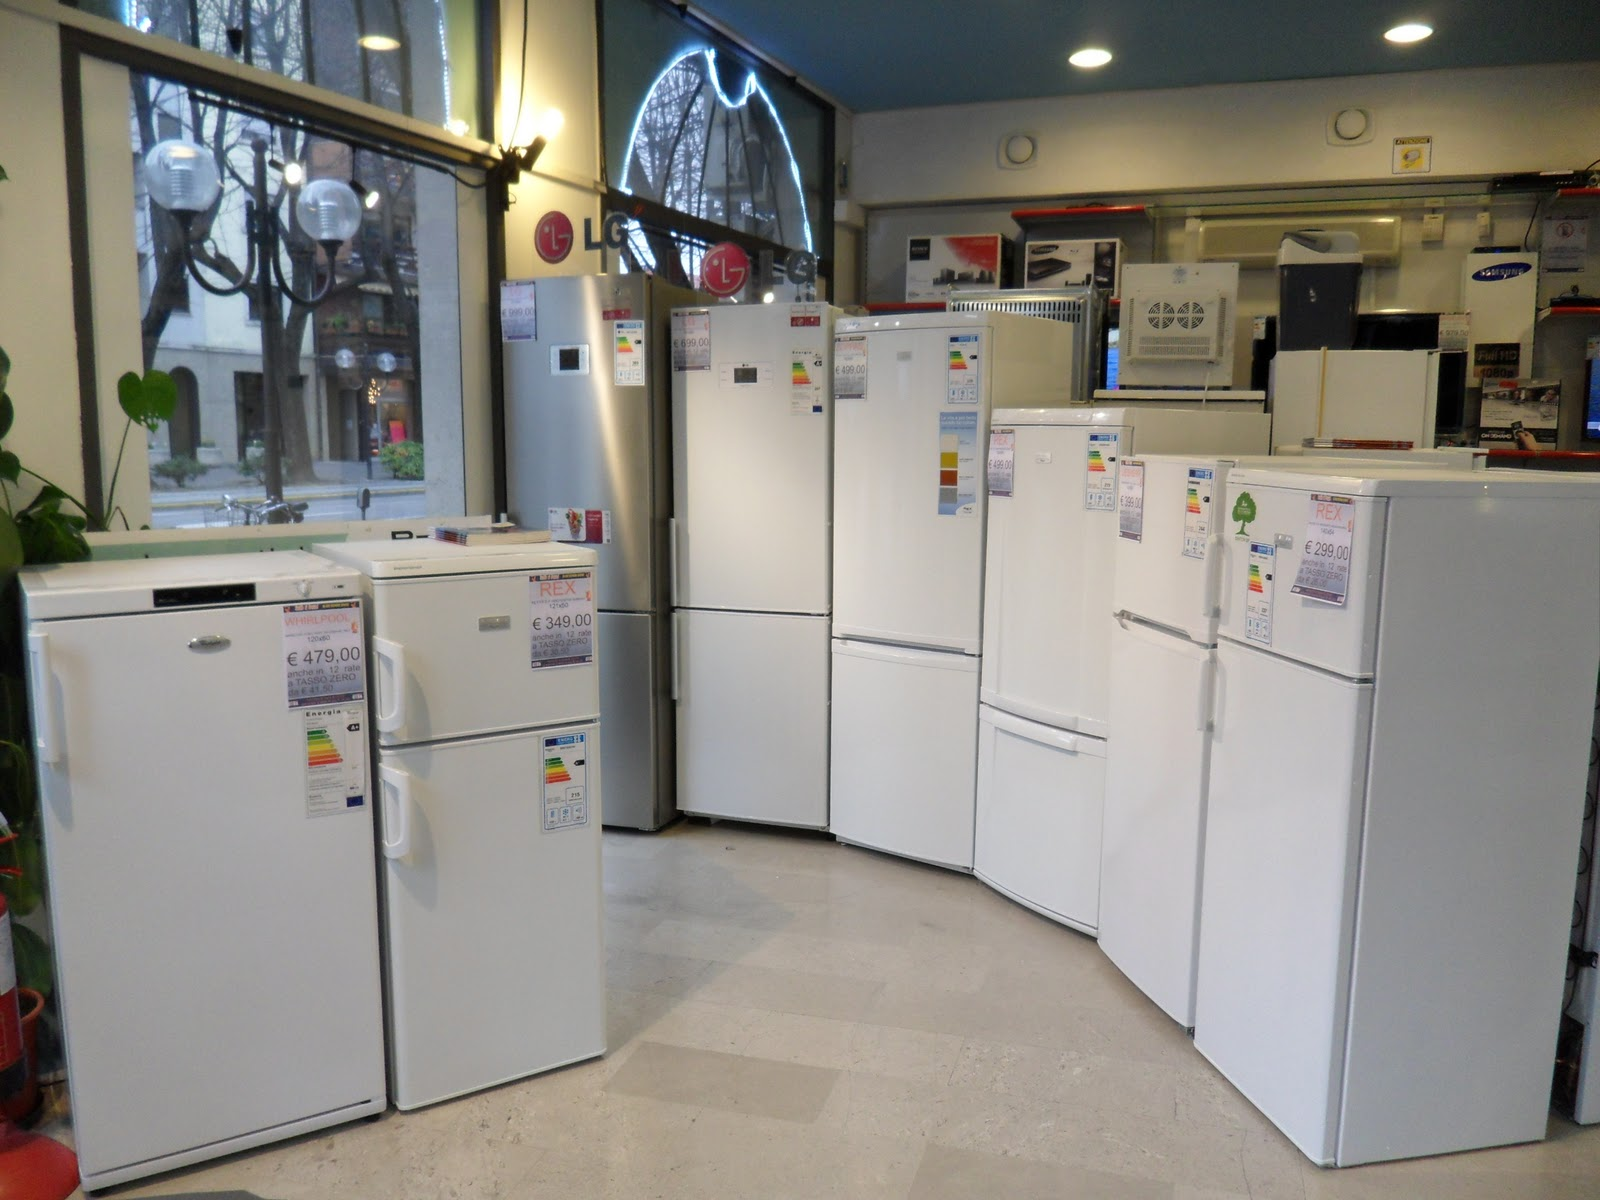 Frigoriferi Ariston Prezzi | Hotpoint Ariston Piano Cottura A Gas Da ...